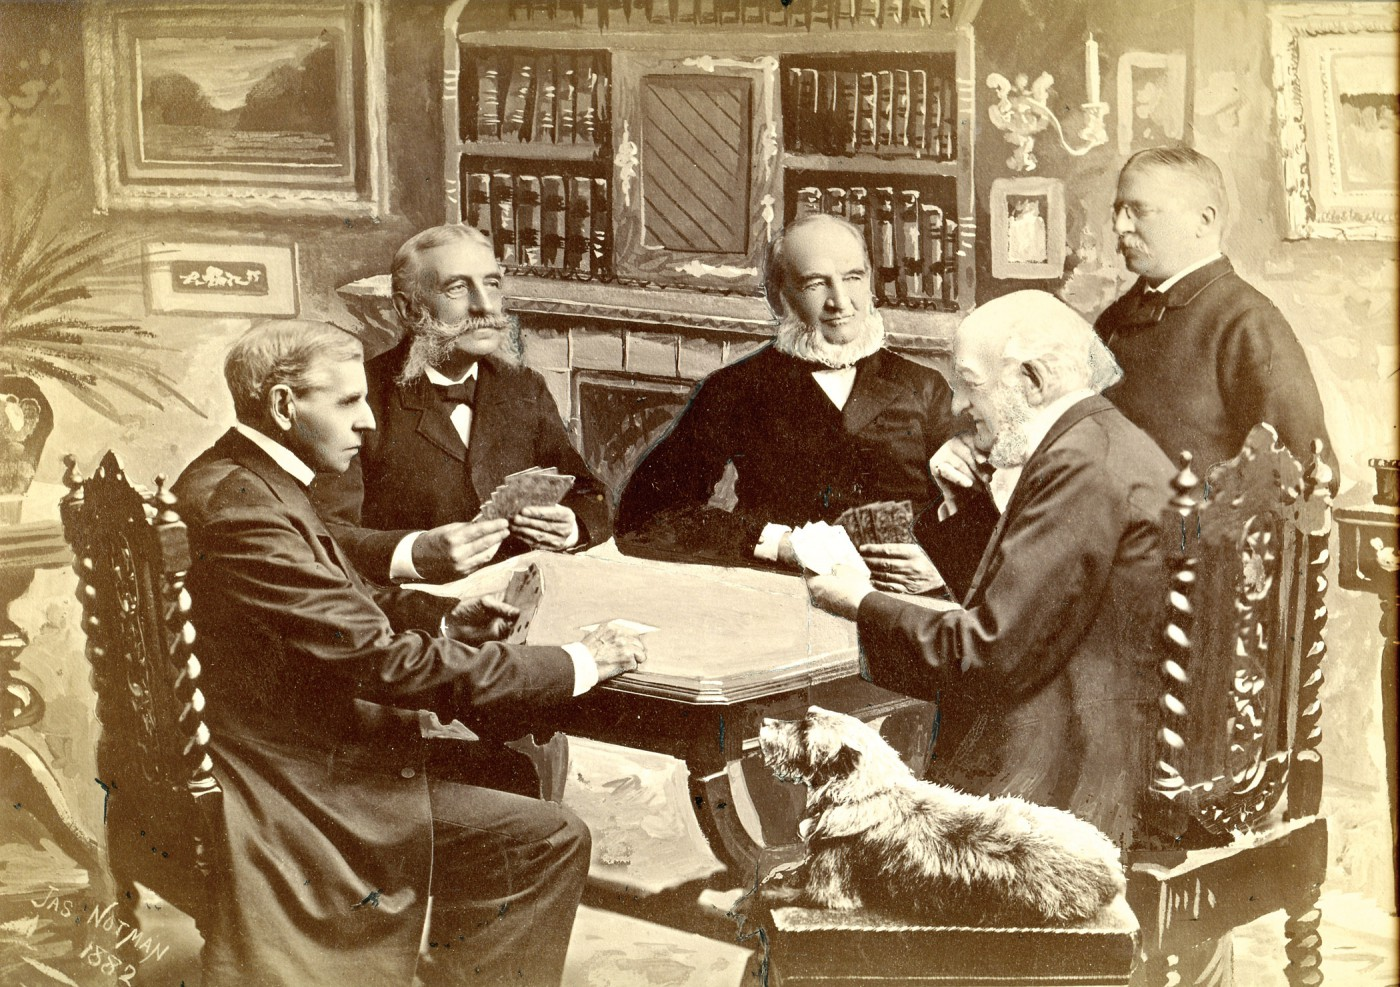 James Notman, </span><span><em>Group of Five Men and a Dog Playing Cards</em>, </span><span>1882 From the collection of Robert Wilson, Photographic Historical Society of Canada.